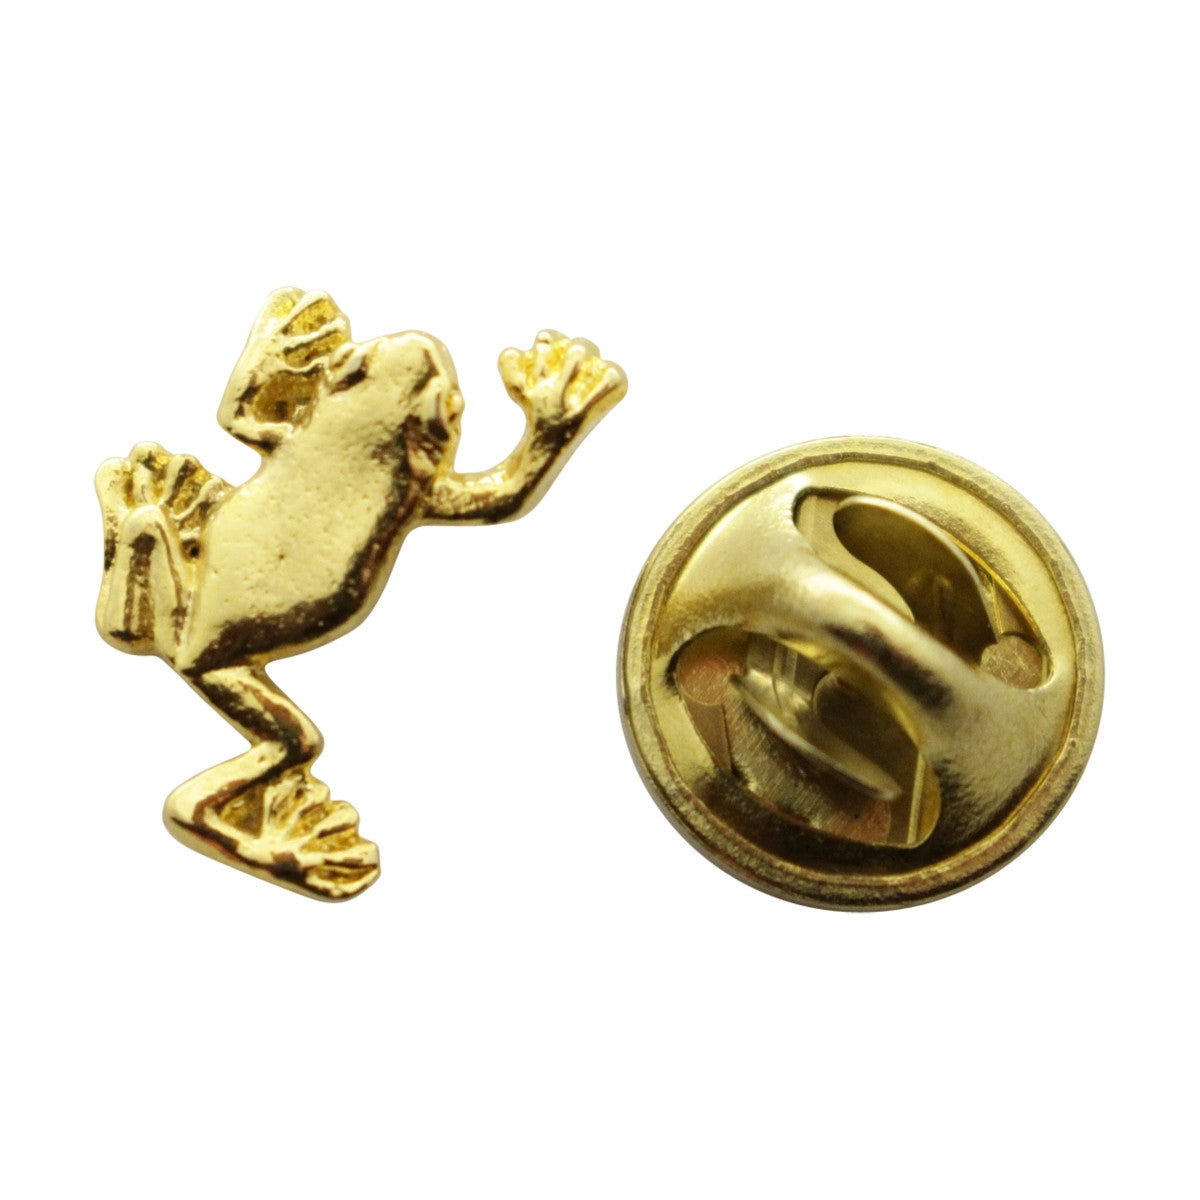 24K Gold Plated Miniature Lapel Pins